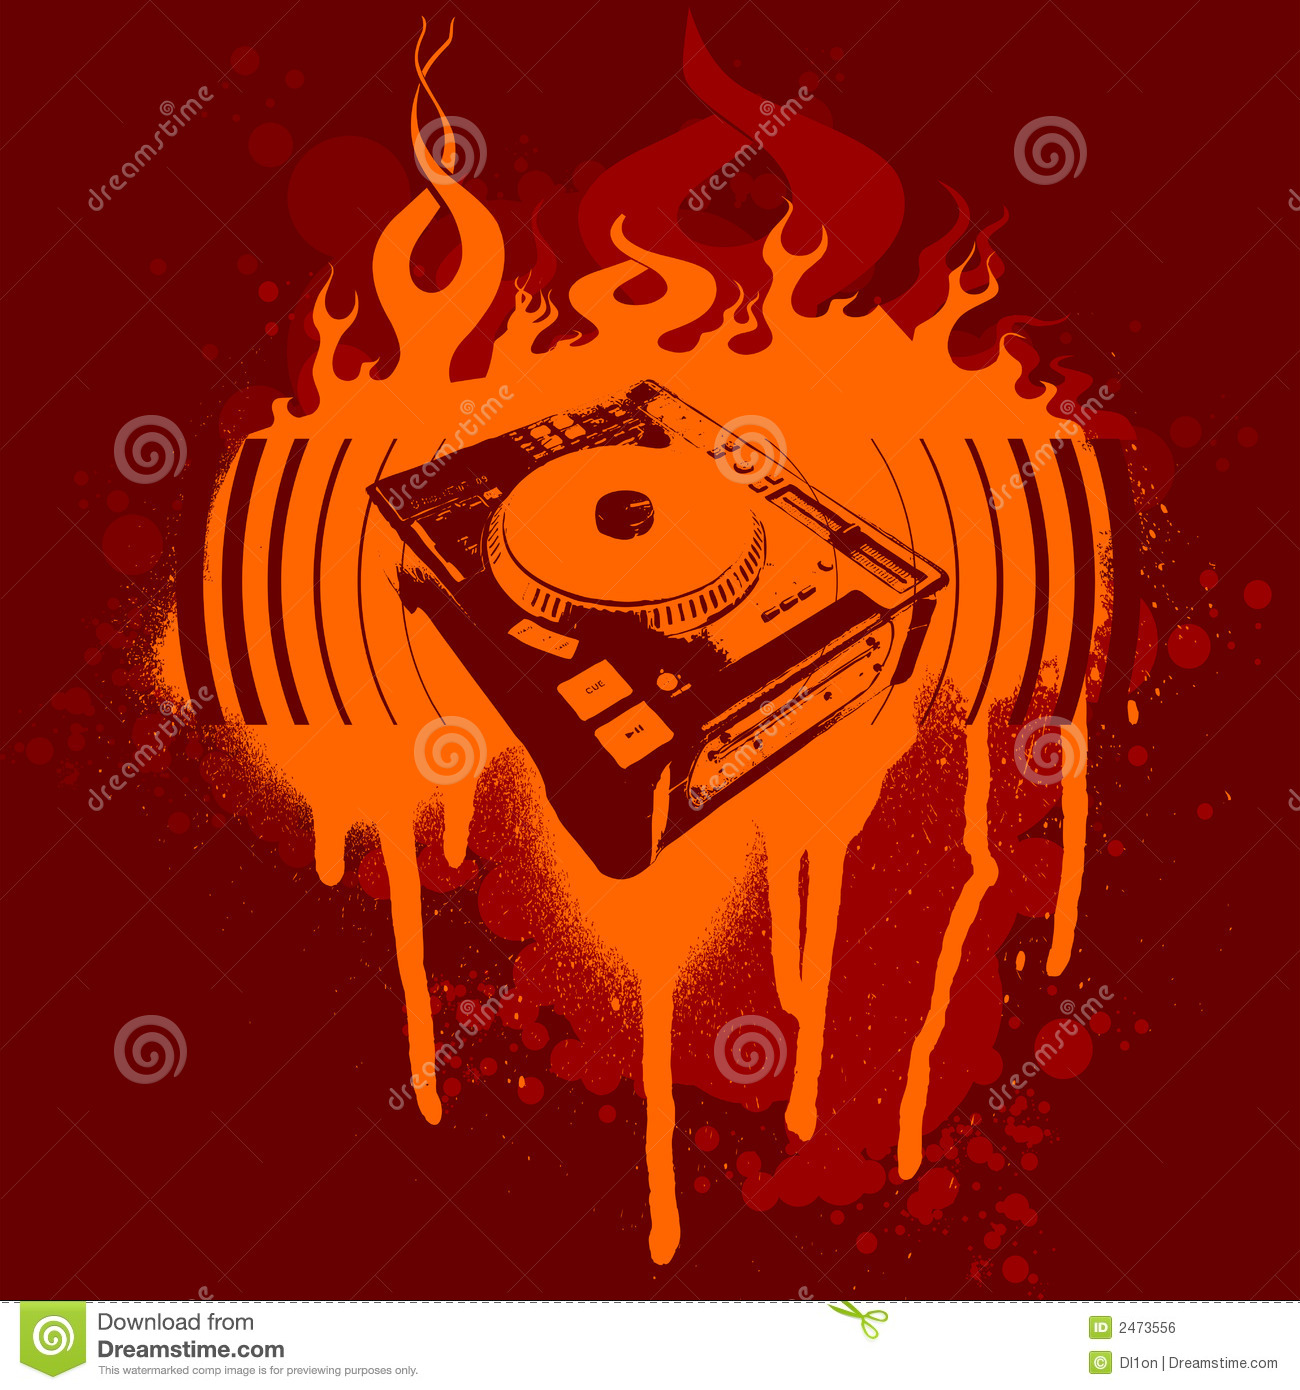 Turntable Red Graffiti. Royalty Free Stock Image - Image: 2473556